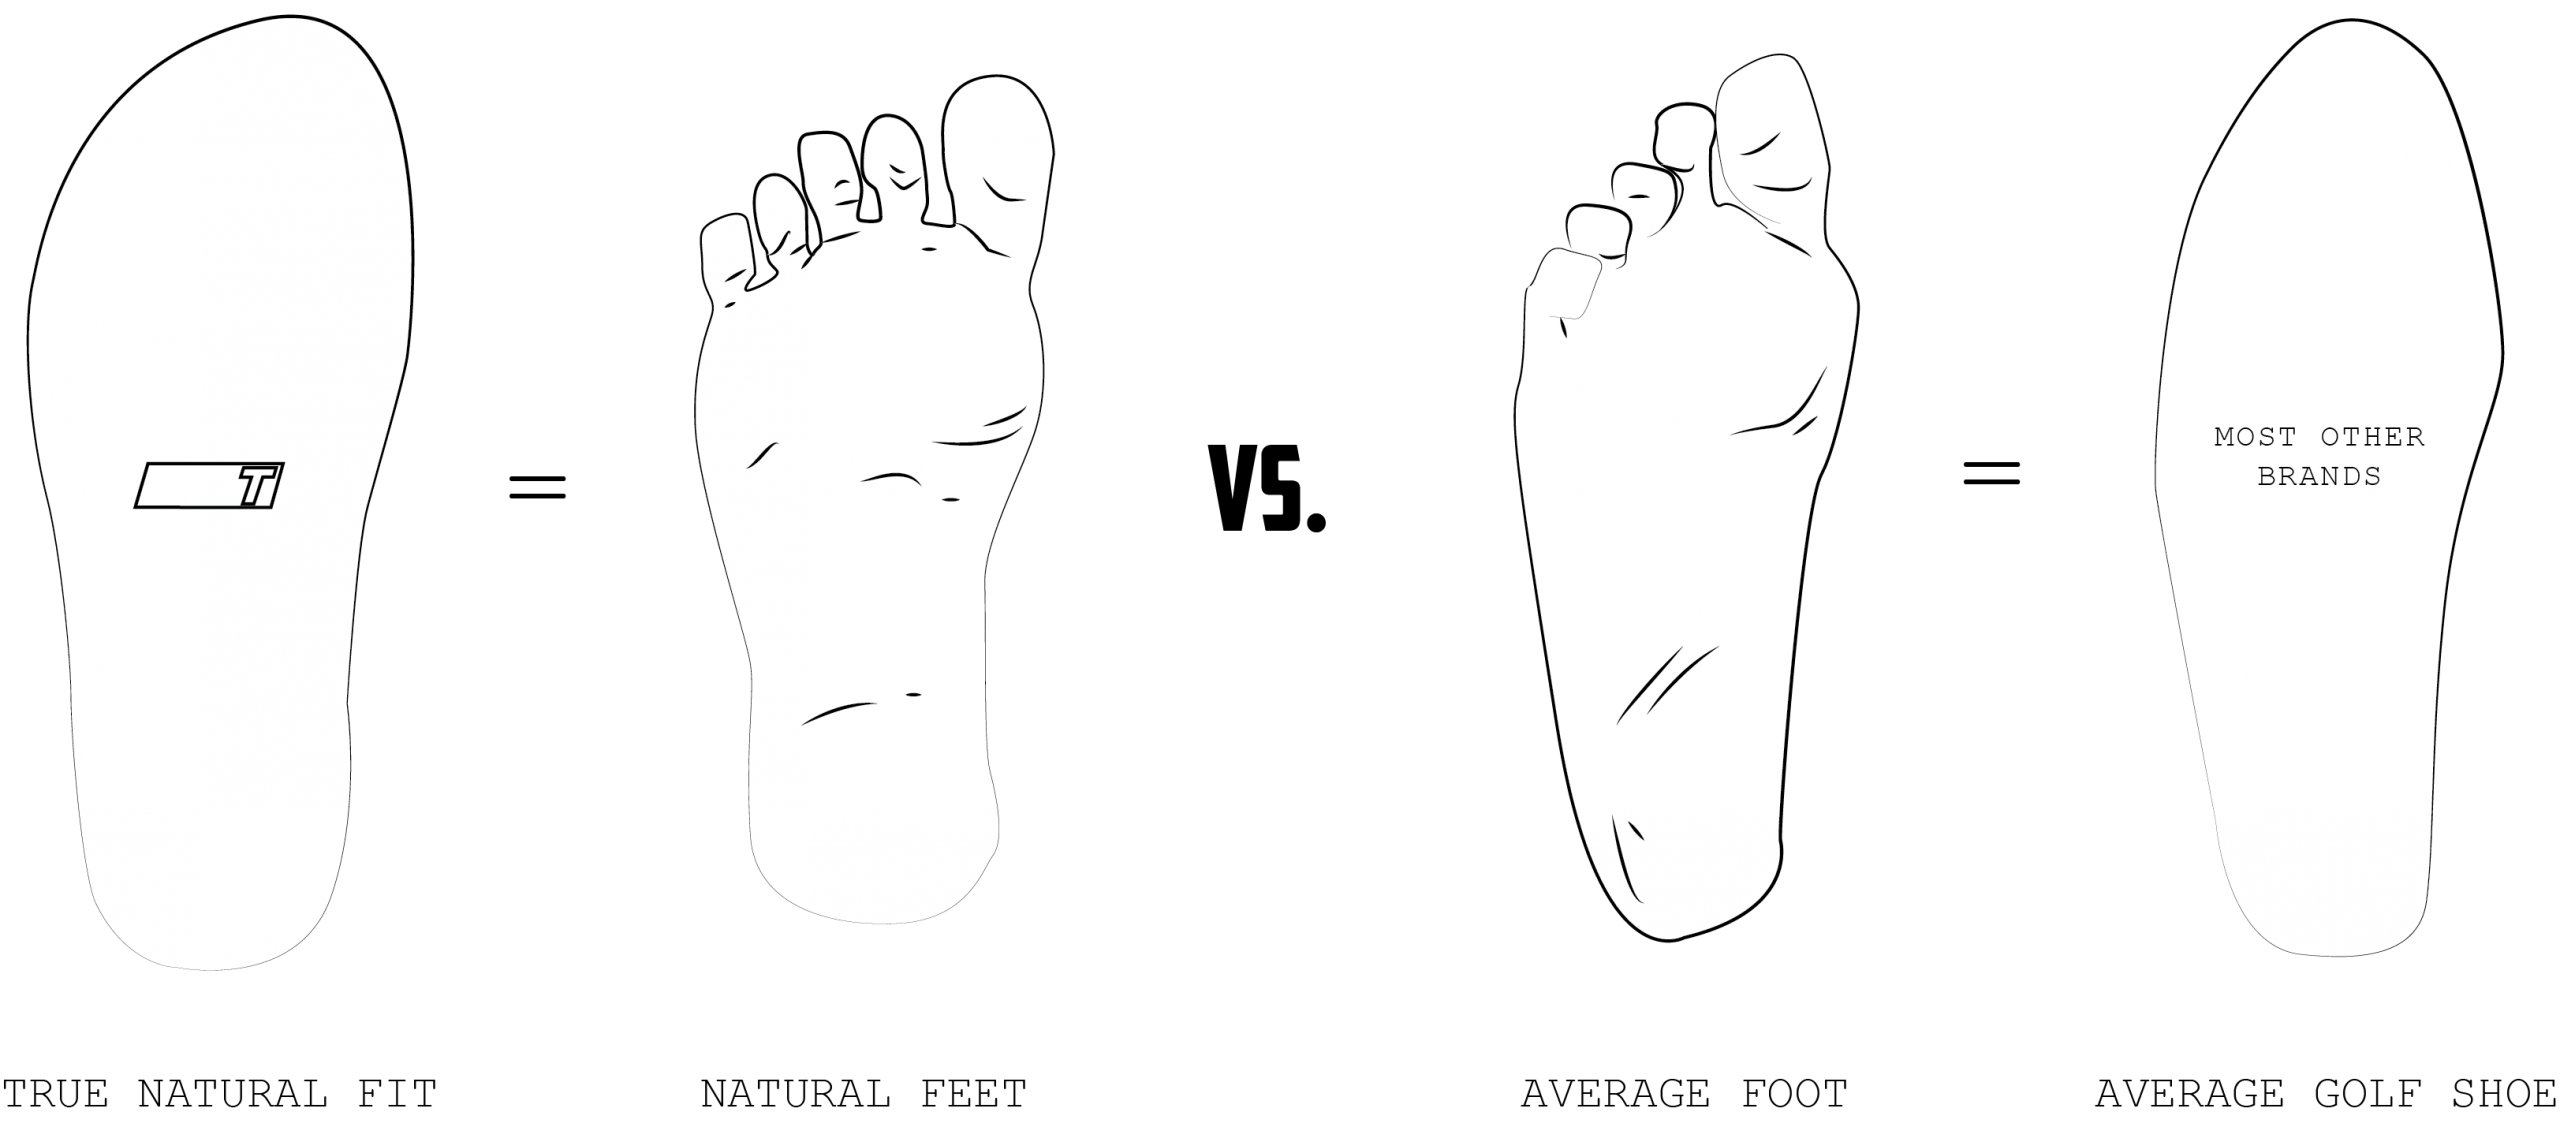 Graphic explaining why True Original shoes give a more natural positon for the feet of the golfer